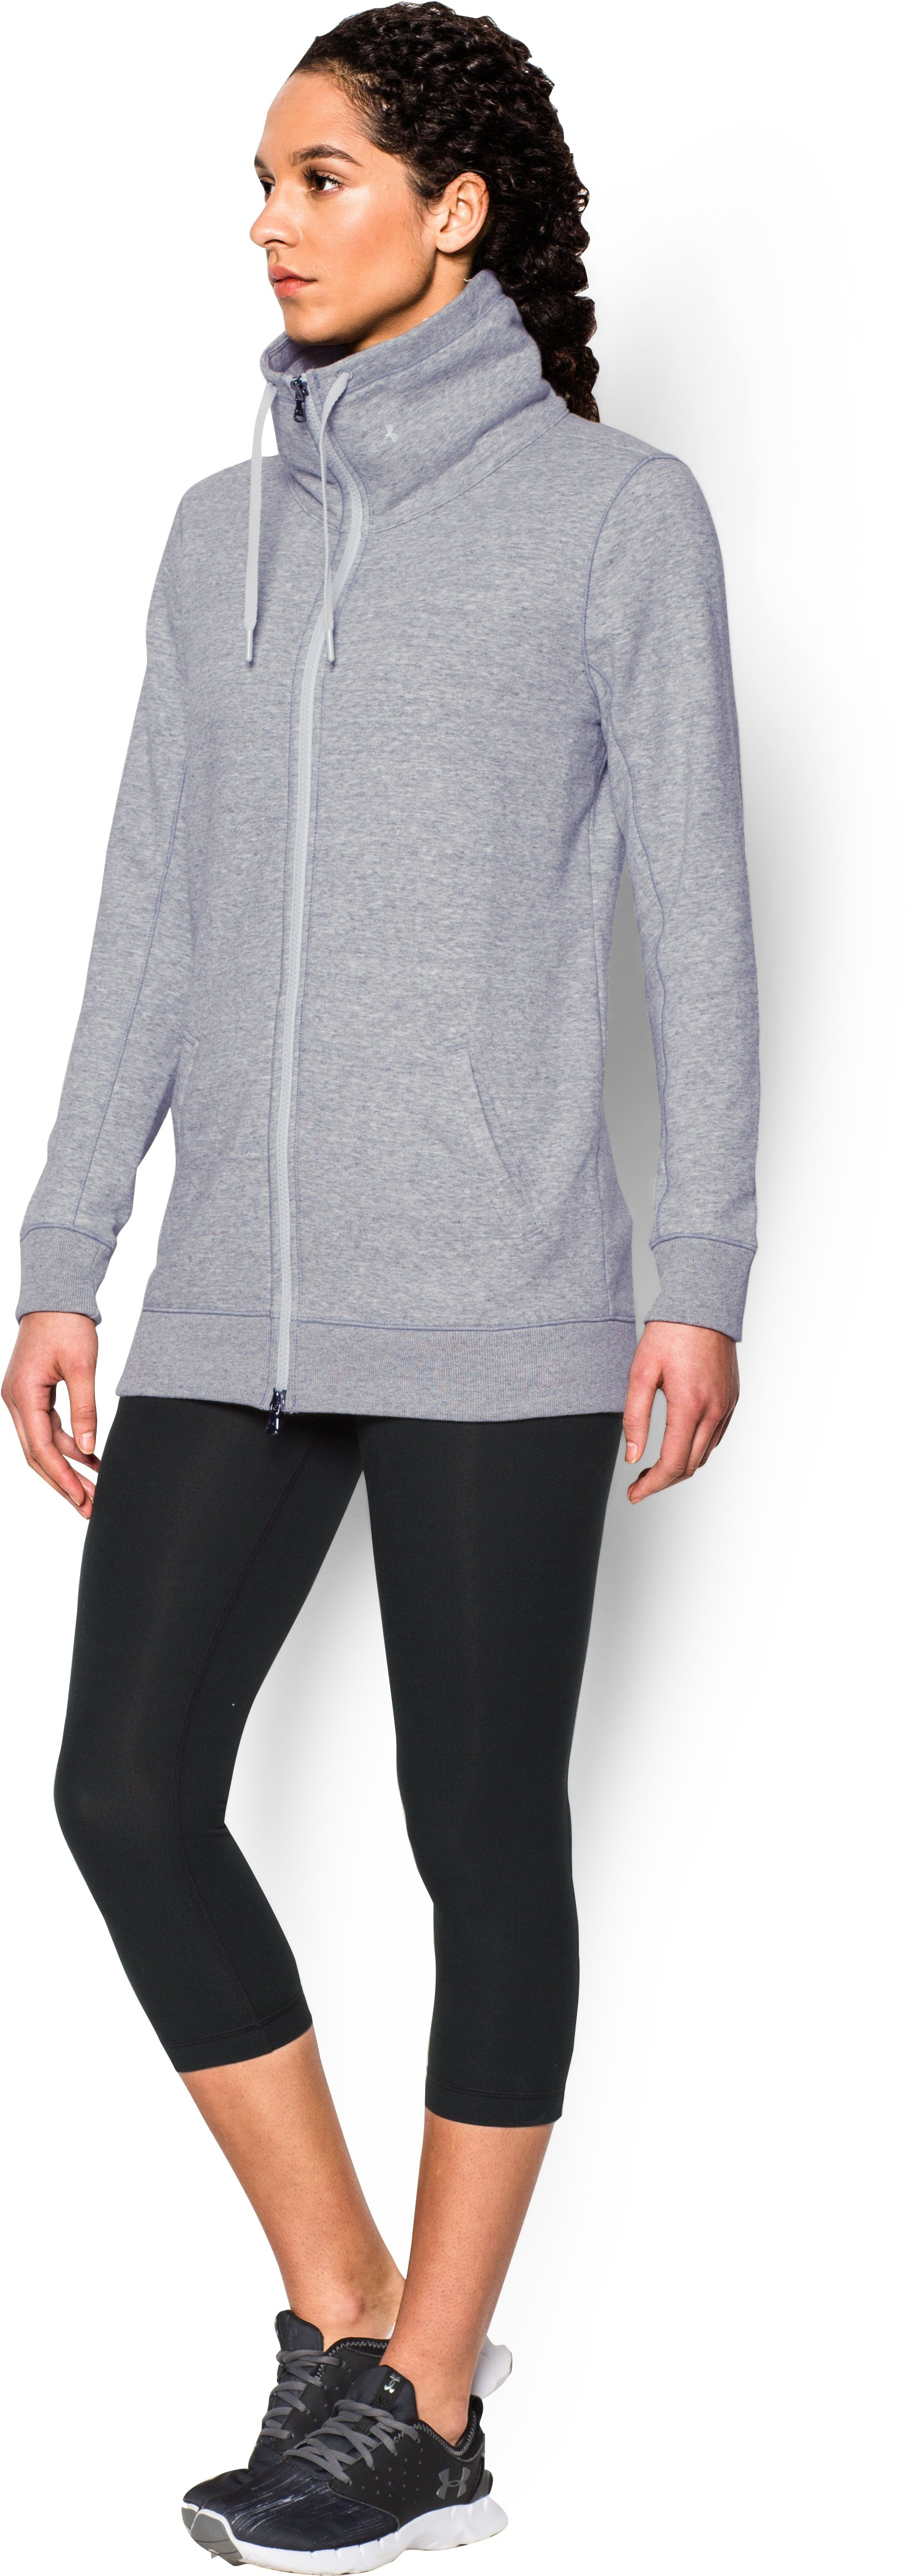 Women's UA Spring Terry Jacket, True Gray Heather, undefined